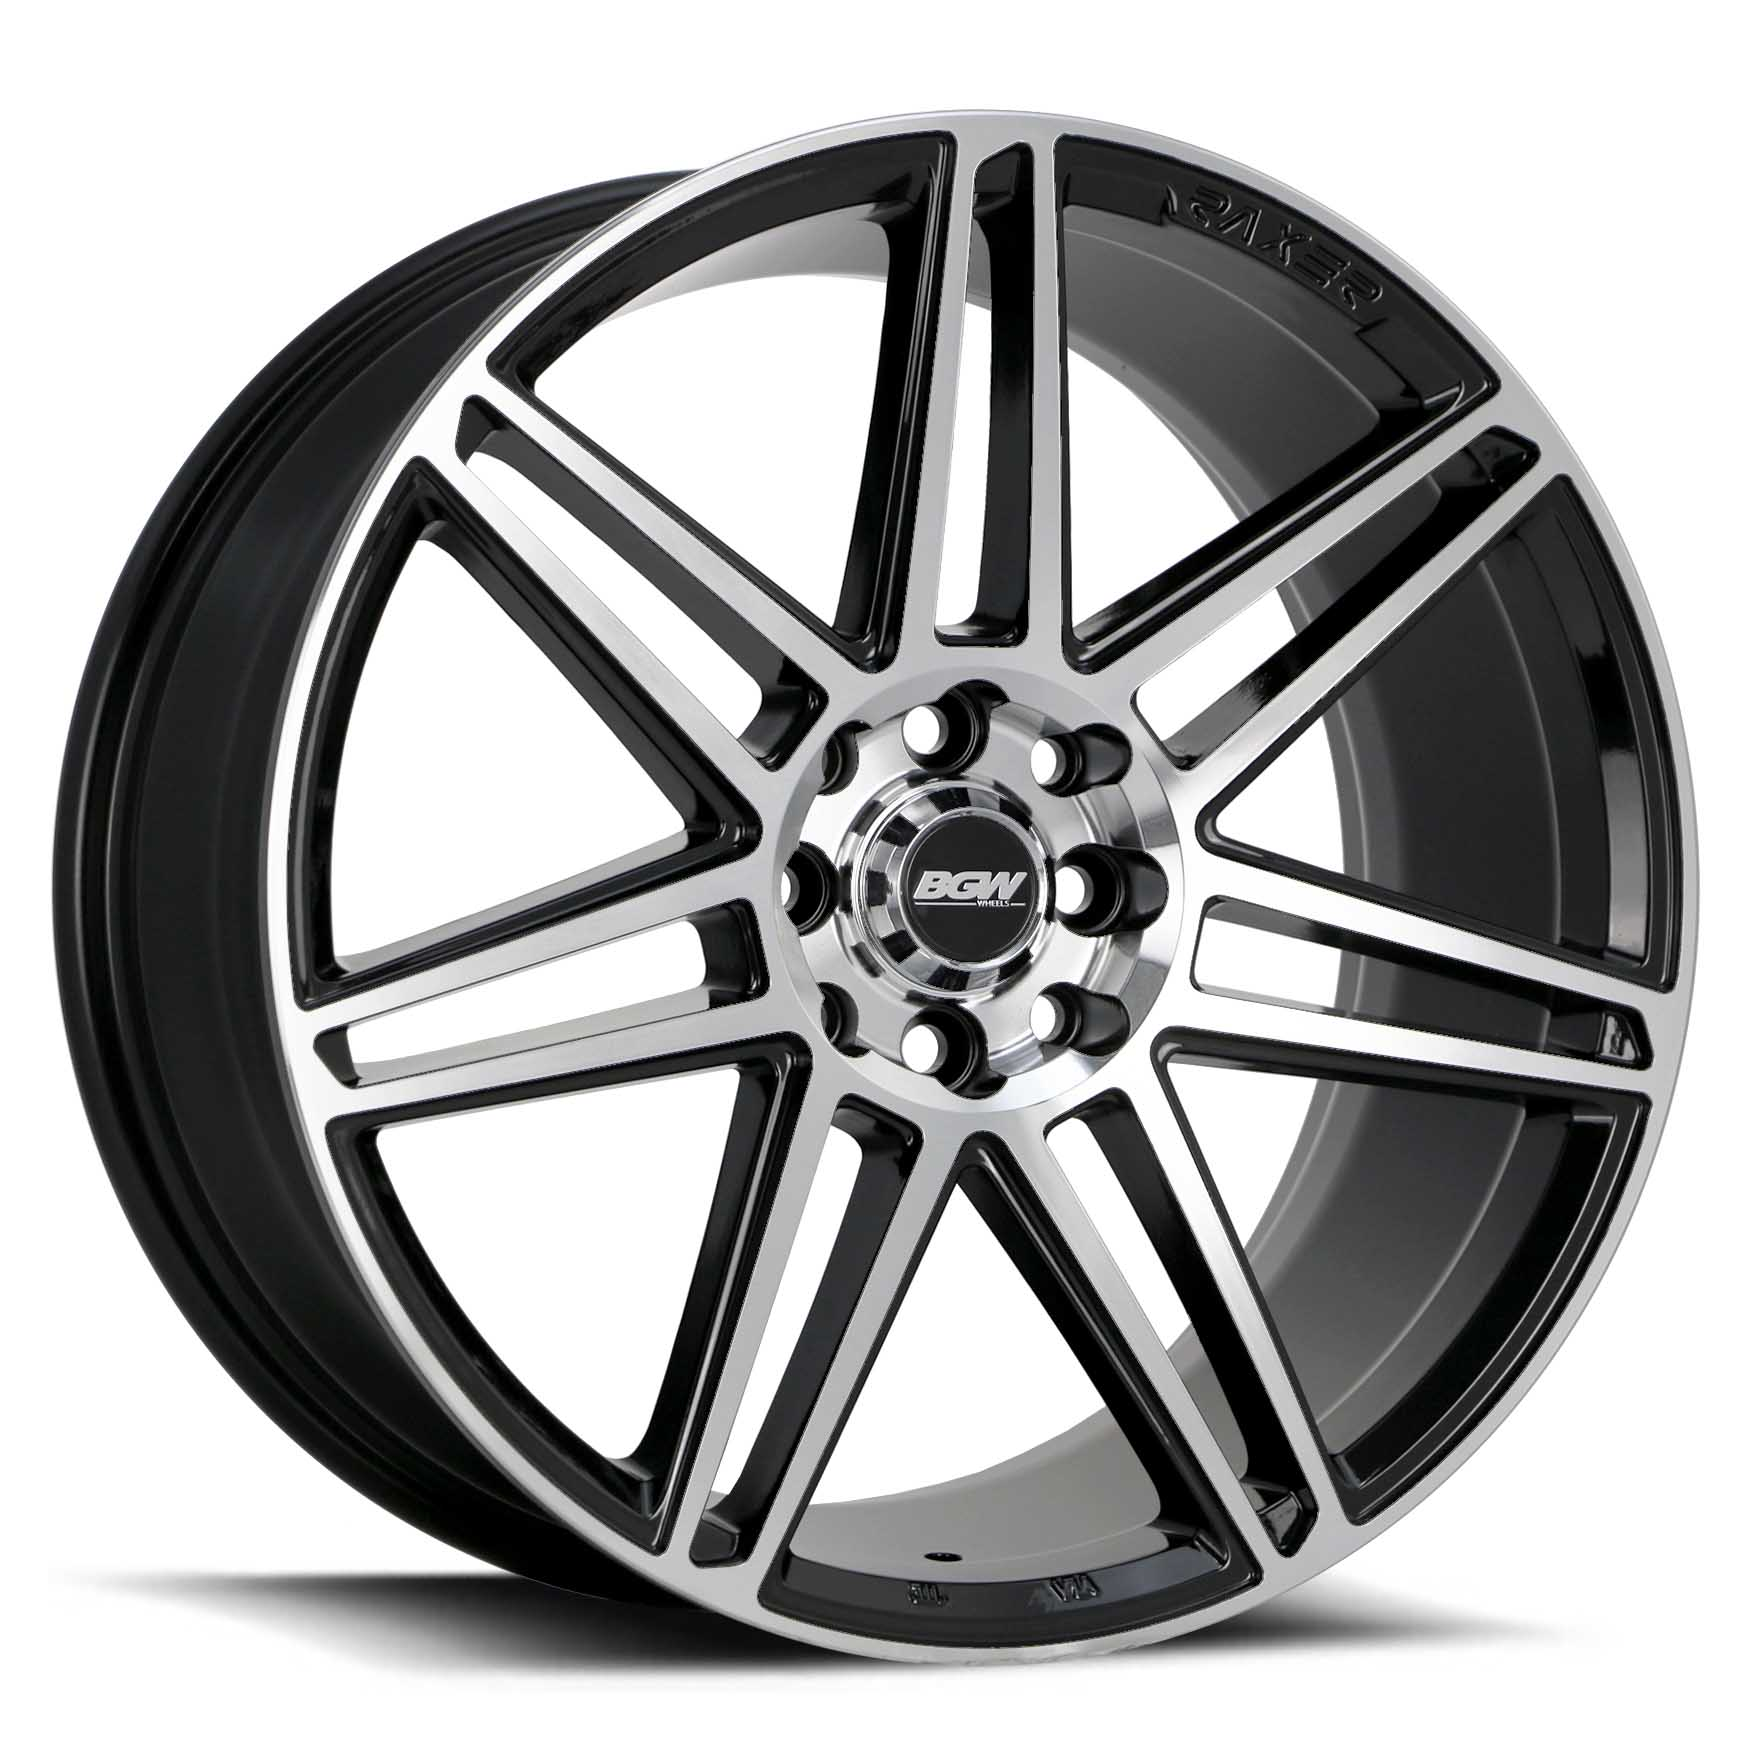 17X7.5 BGW 5X108/114.3 35 DAKODA GLOSS BLACK W MACHINED FACE